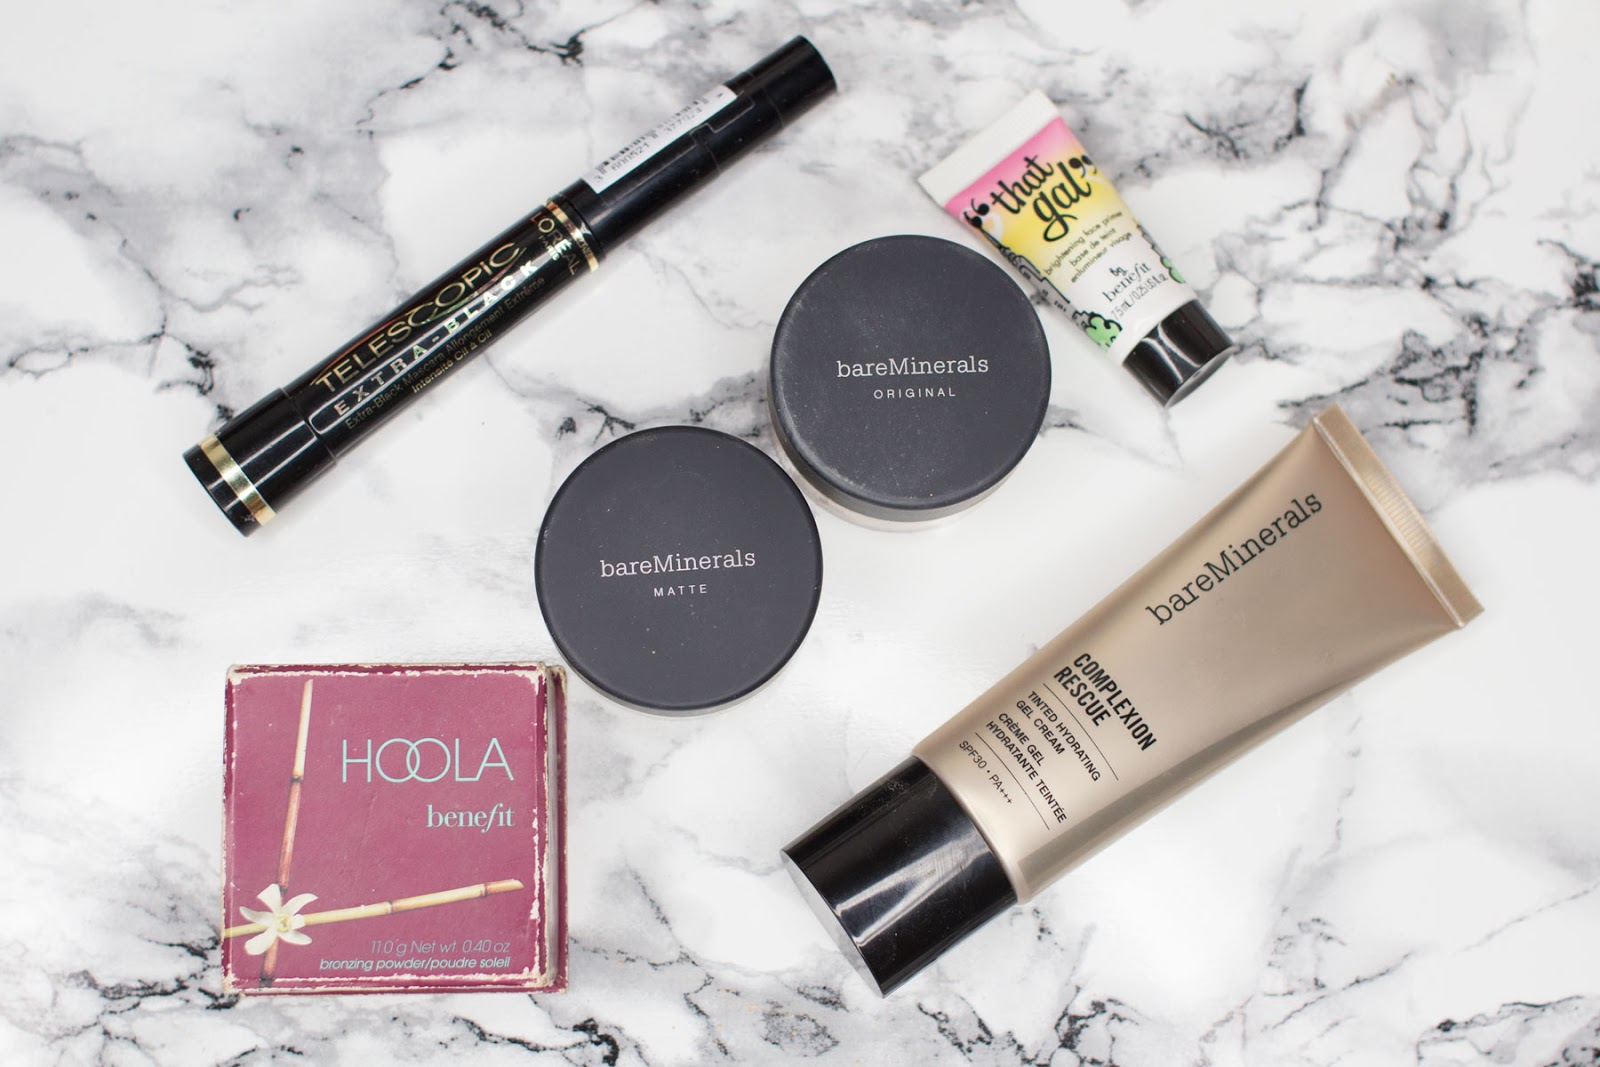 L'oreal Telescopic Mascara, Benefit Hoola Bronzer, BareMinerals Original Foundation, BareMinerals Matte Foundation, Benefit That Gal Primer, BareMinerals Complexion Rescue Review